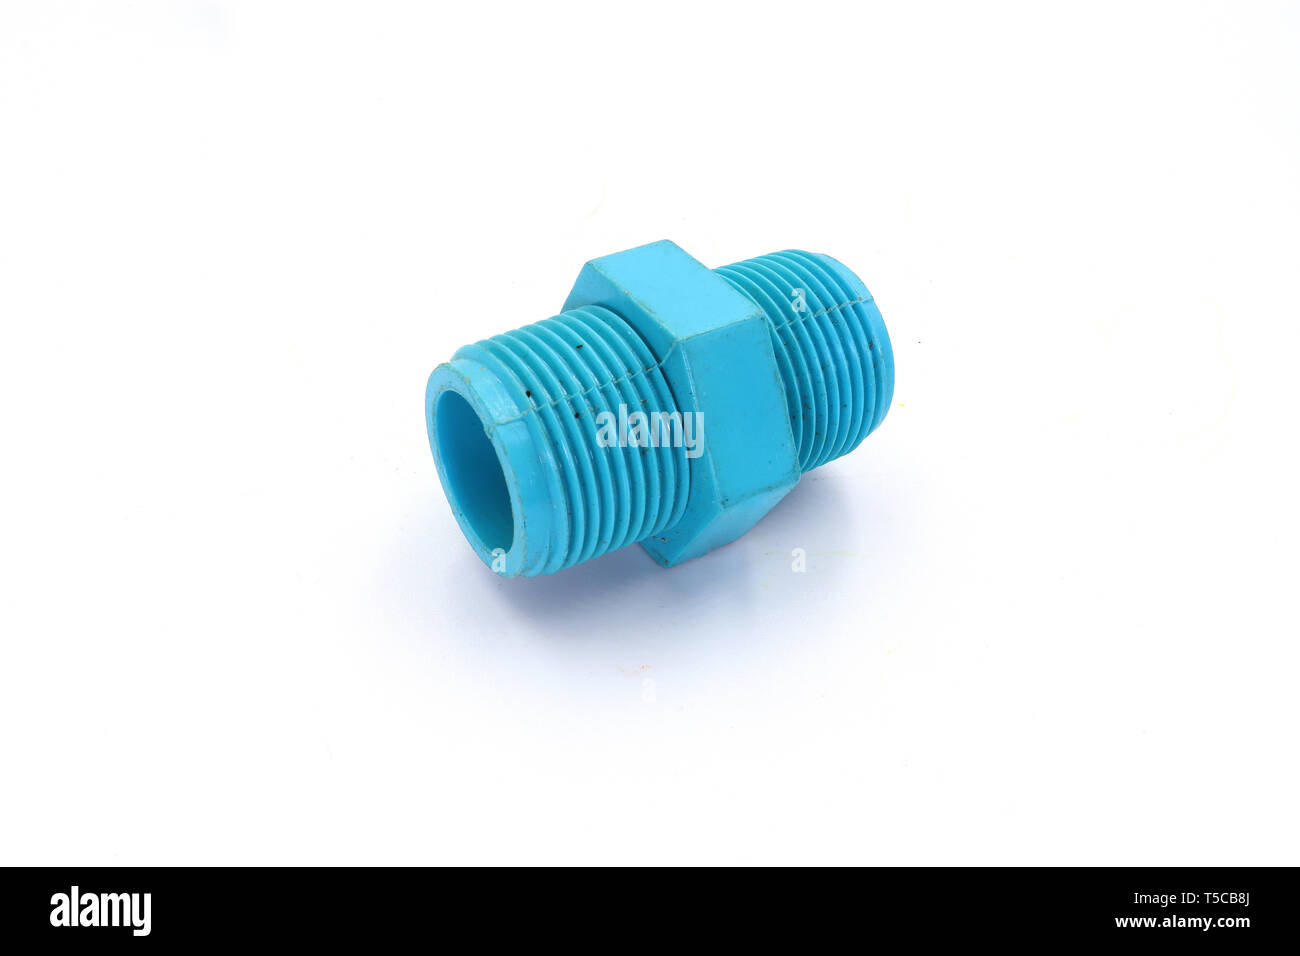 Pvc Pipe Fitting Stock Photos Pvc Pipe Fitting Stock